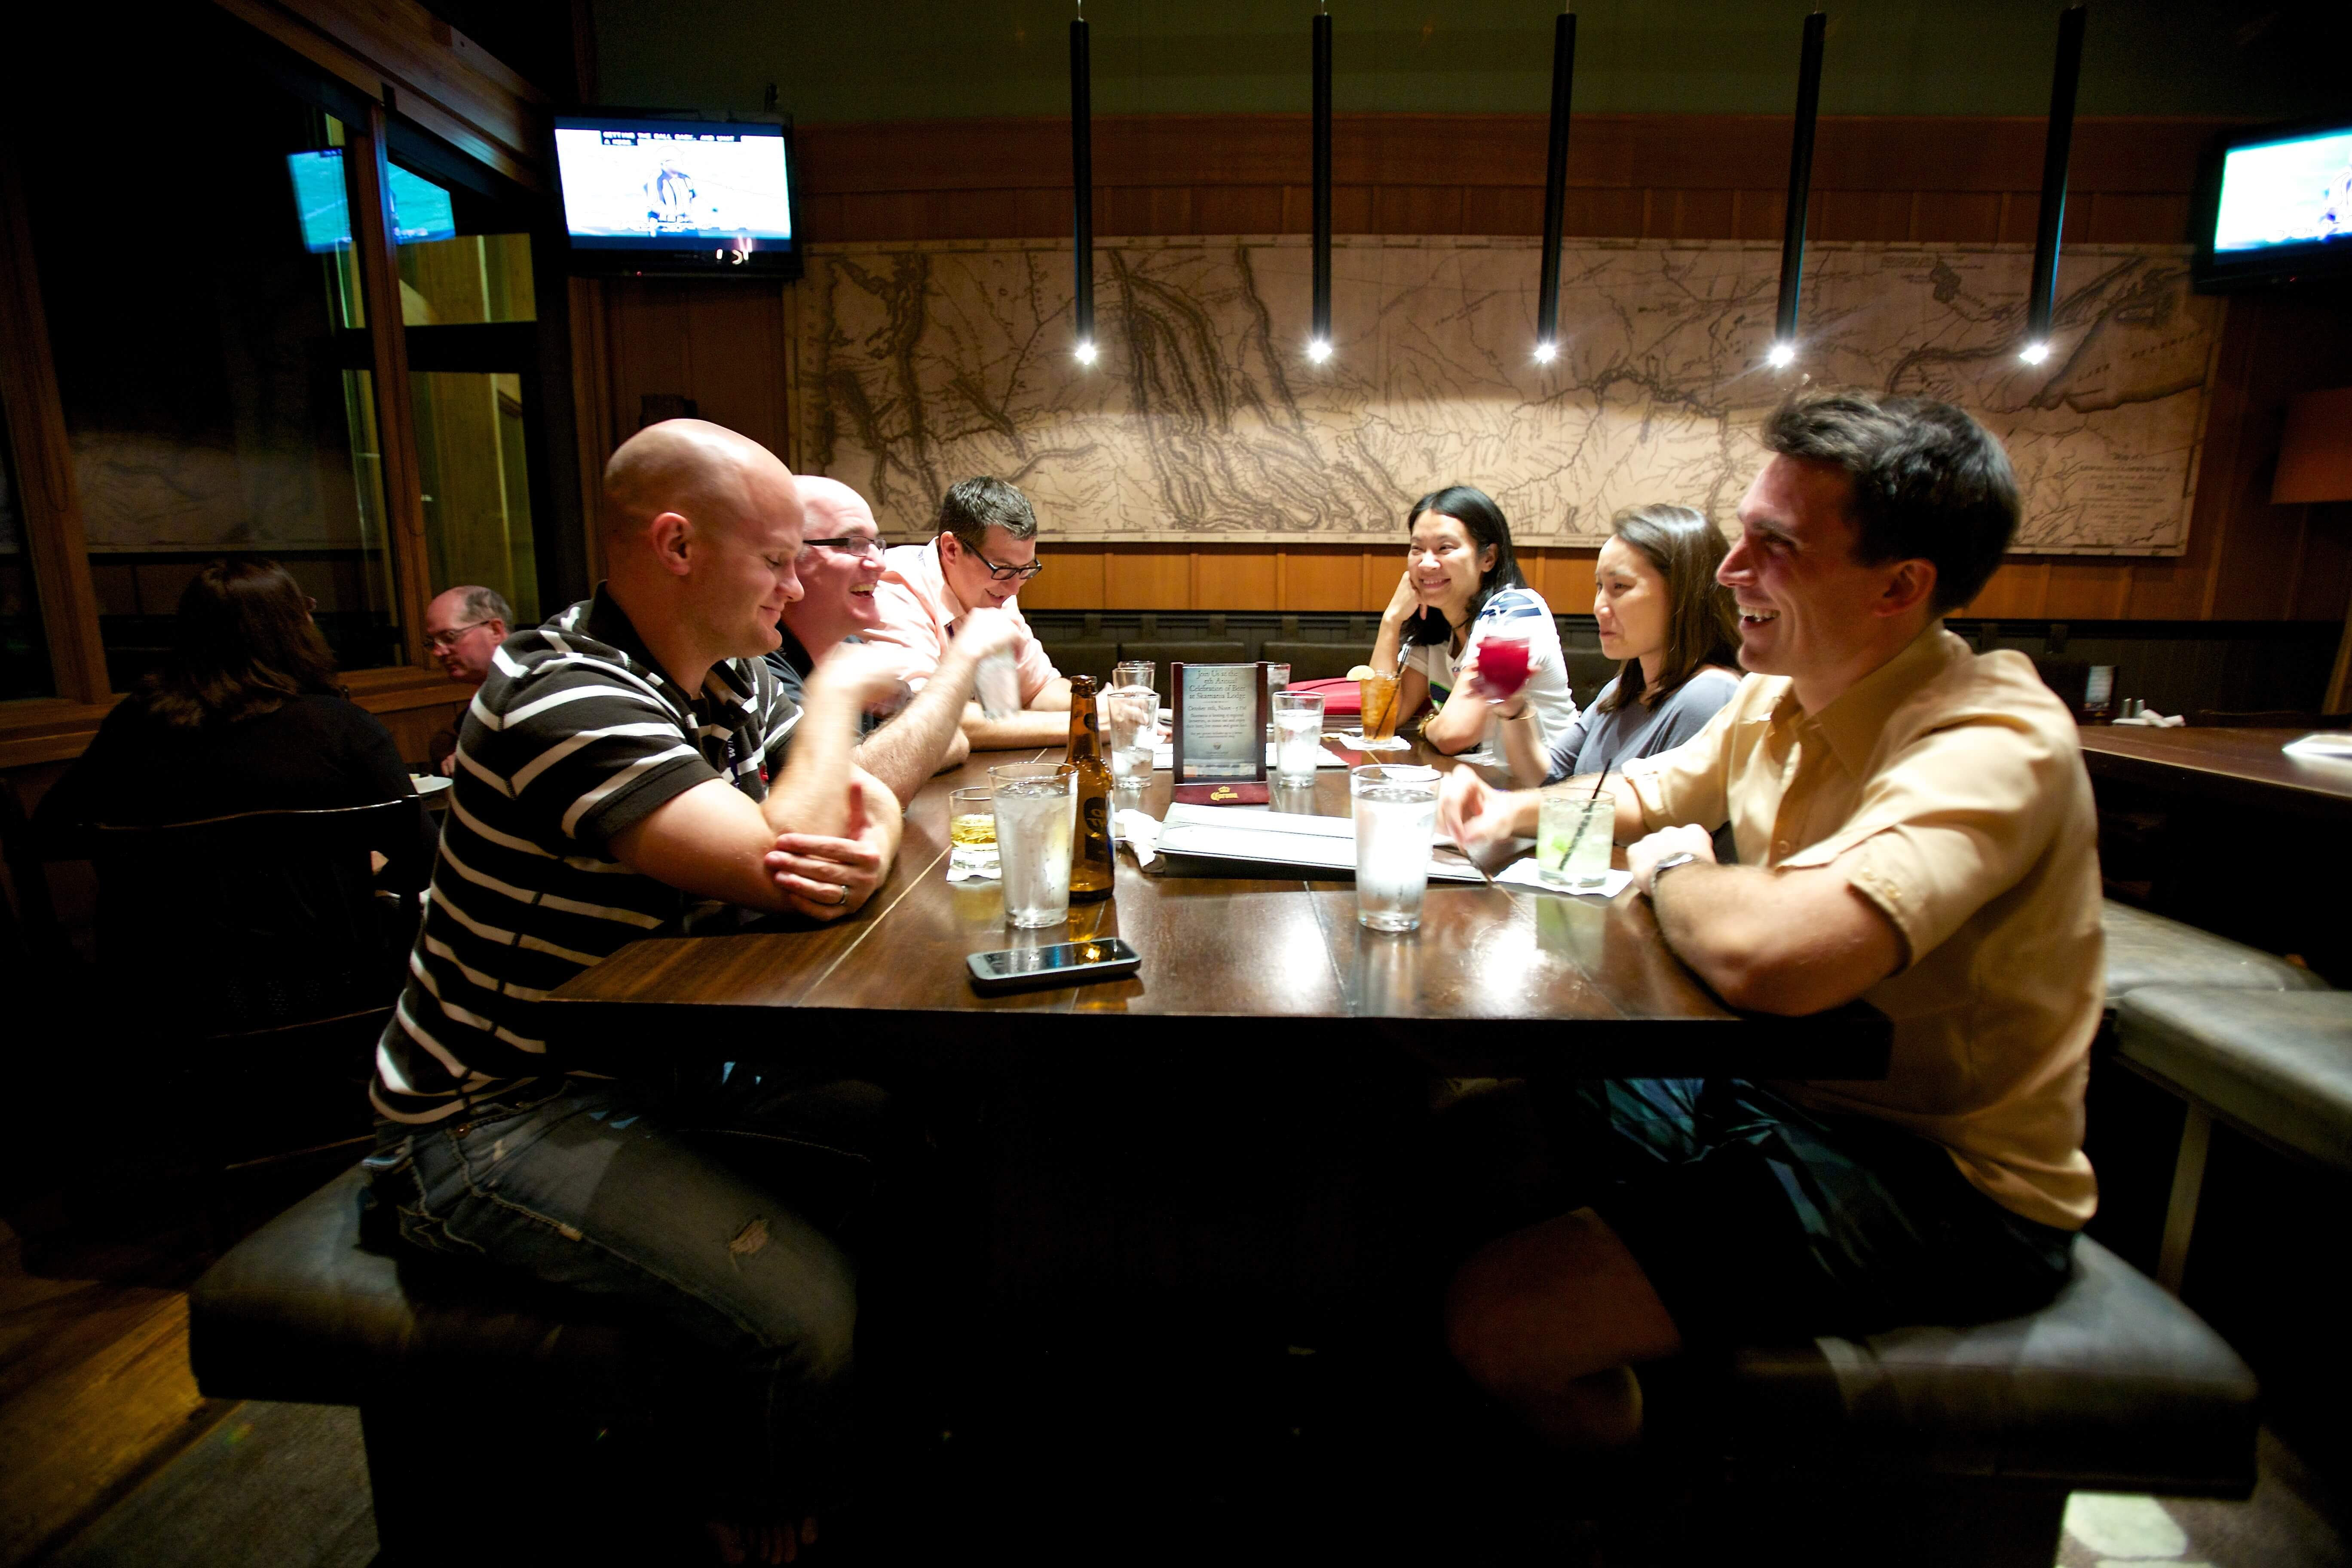 8 Inexpensive Ways to Socialize and Spend Time With Friends